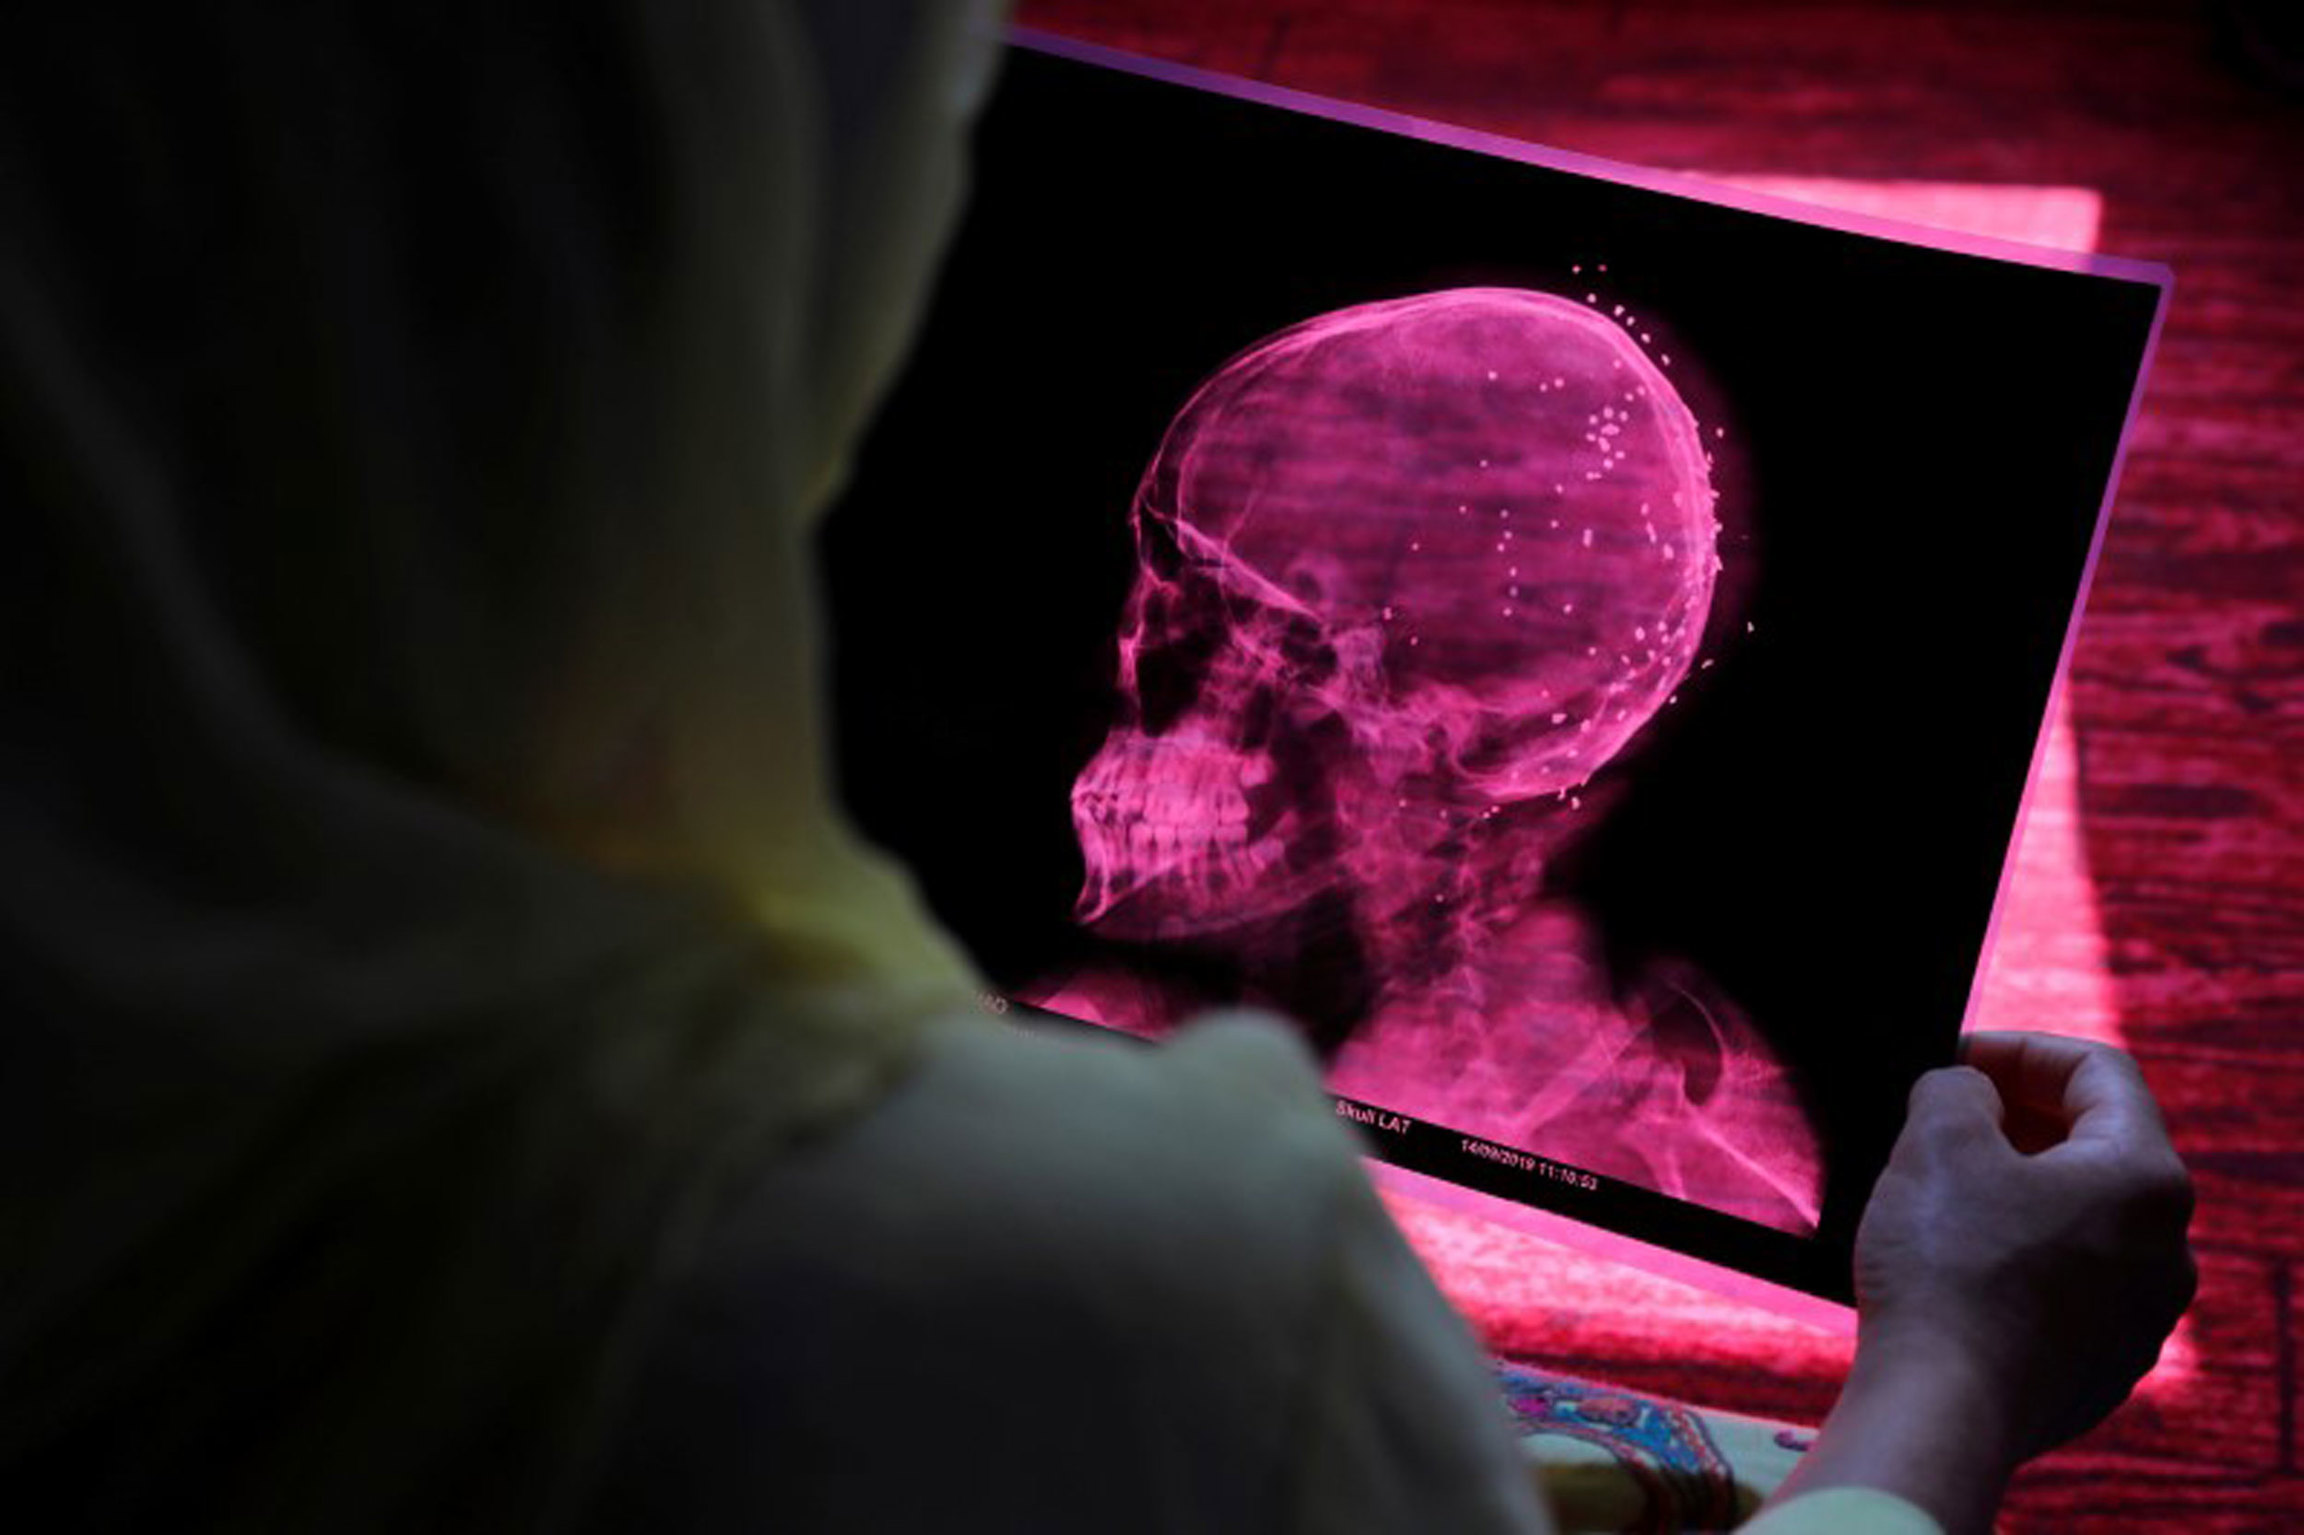 A woman is shown from over her shoulder holding a pink colored X-ray